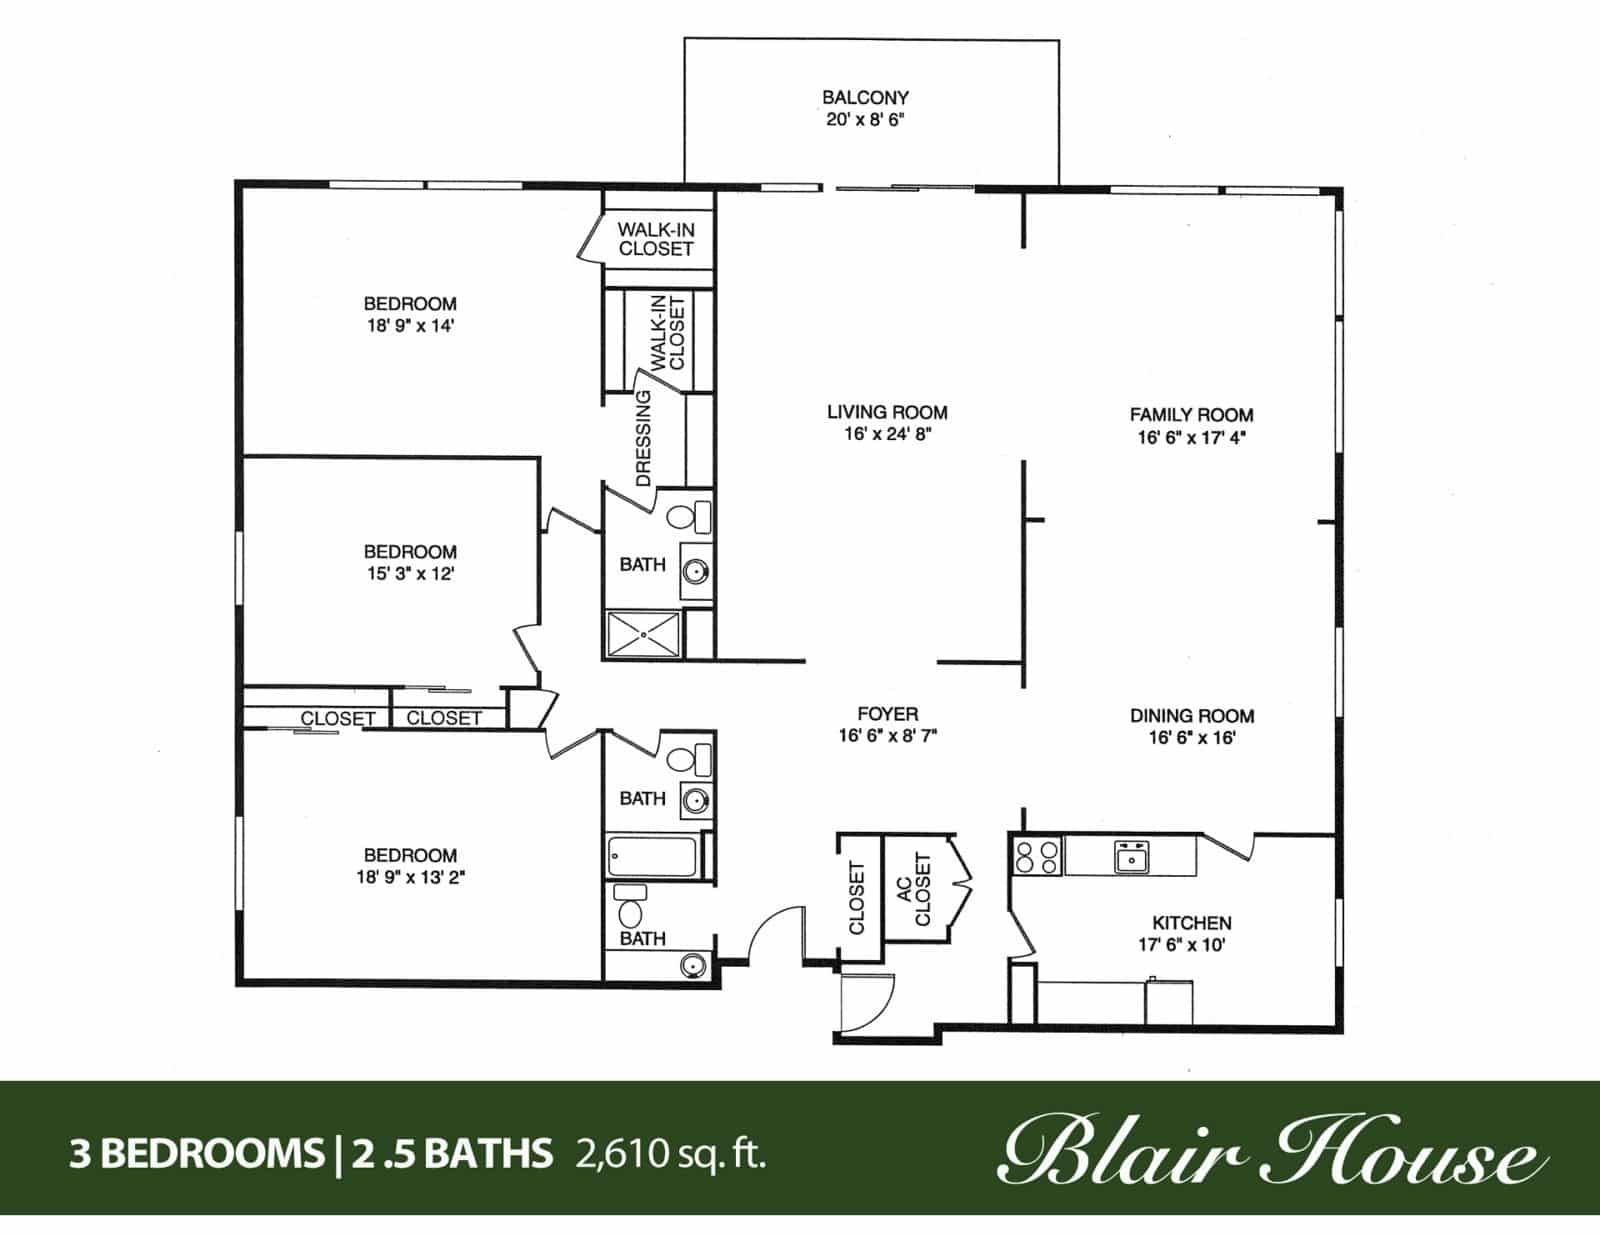 Blair House Condos For Sale And Rent In Bay Harbor Islands Fl 33154